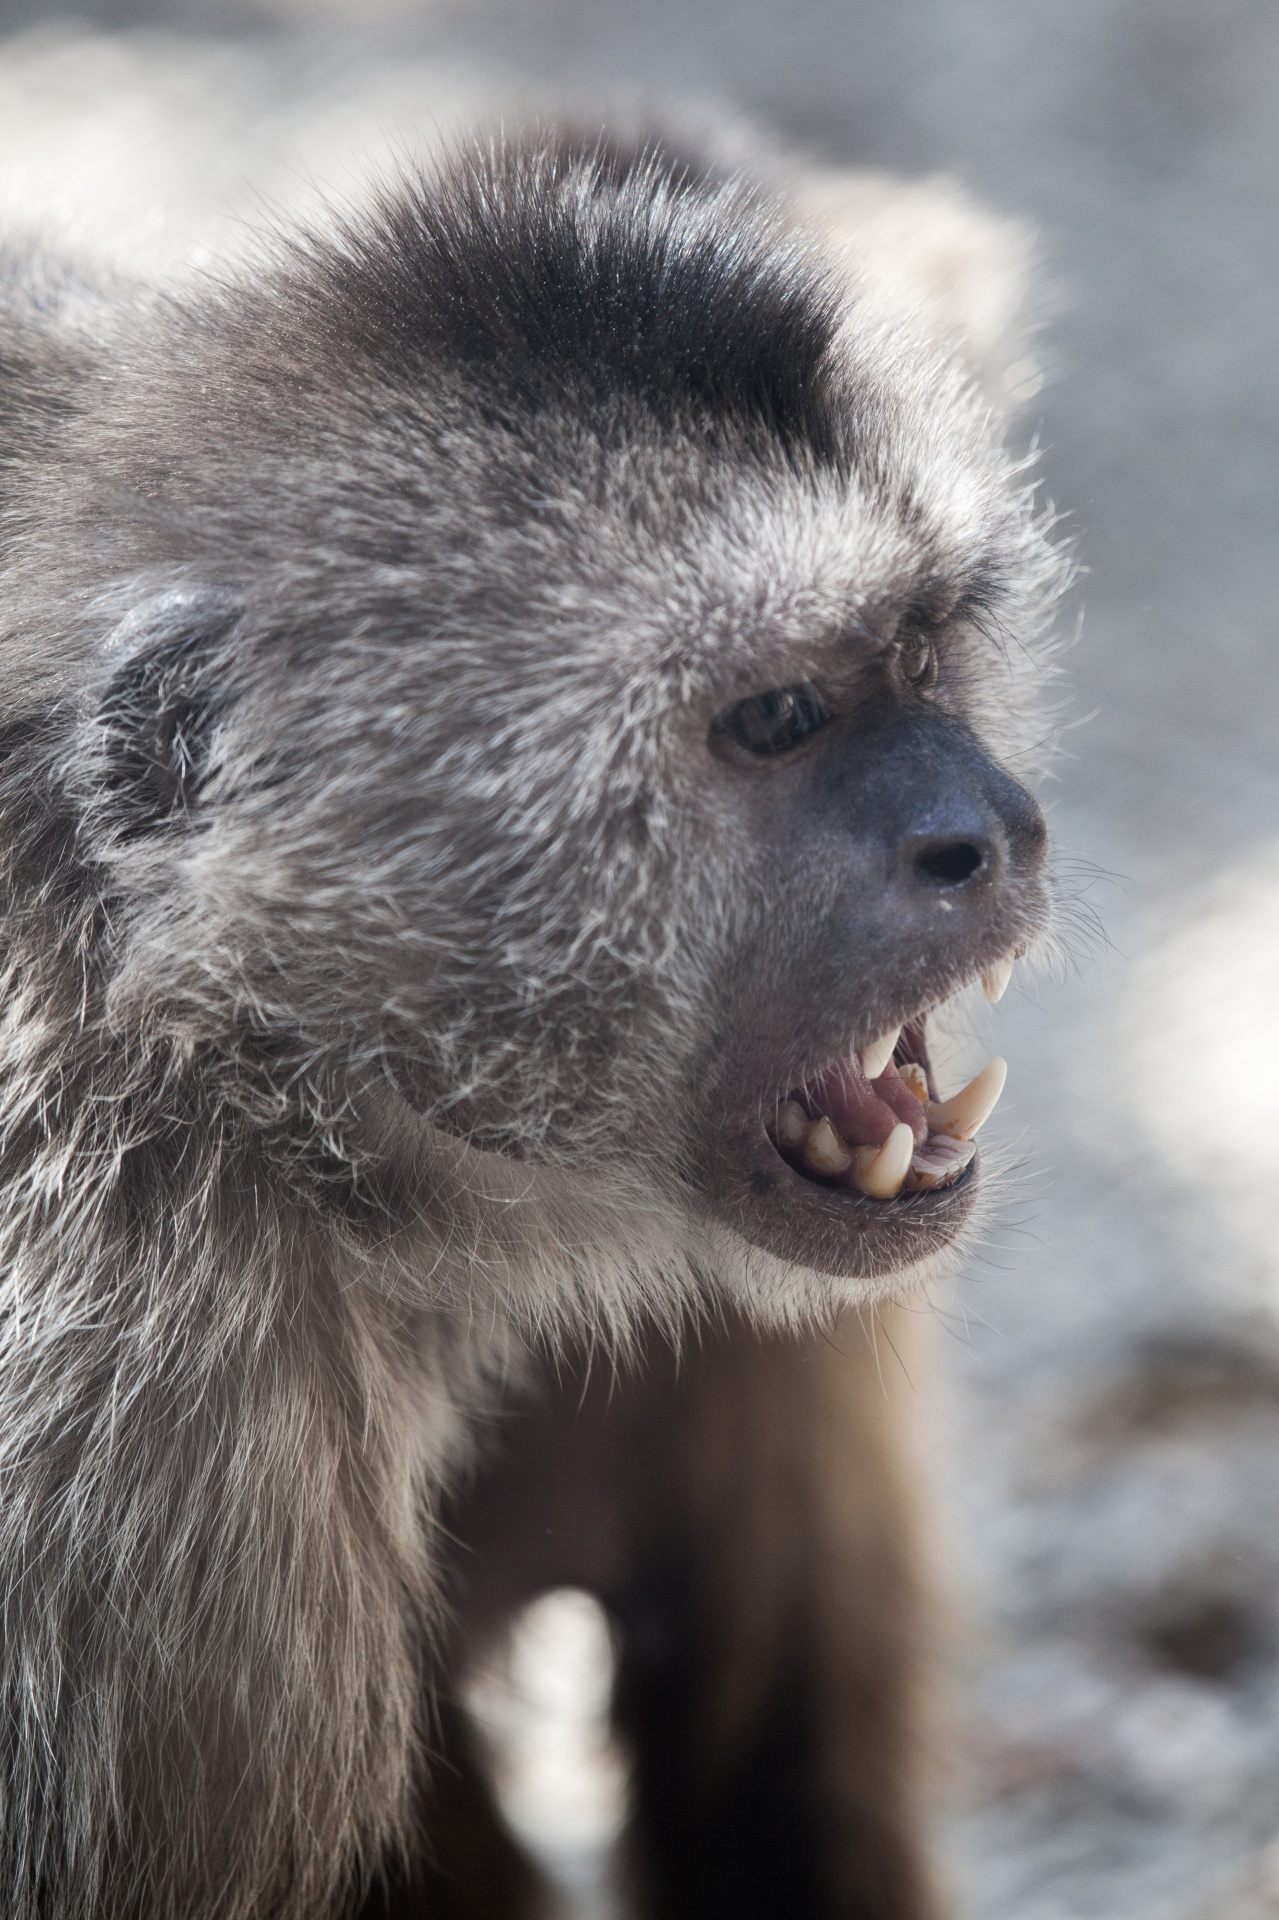 Screaming Monkey Free Stock Photo - Public Domain Pictures